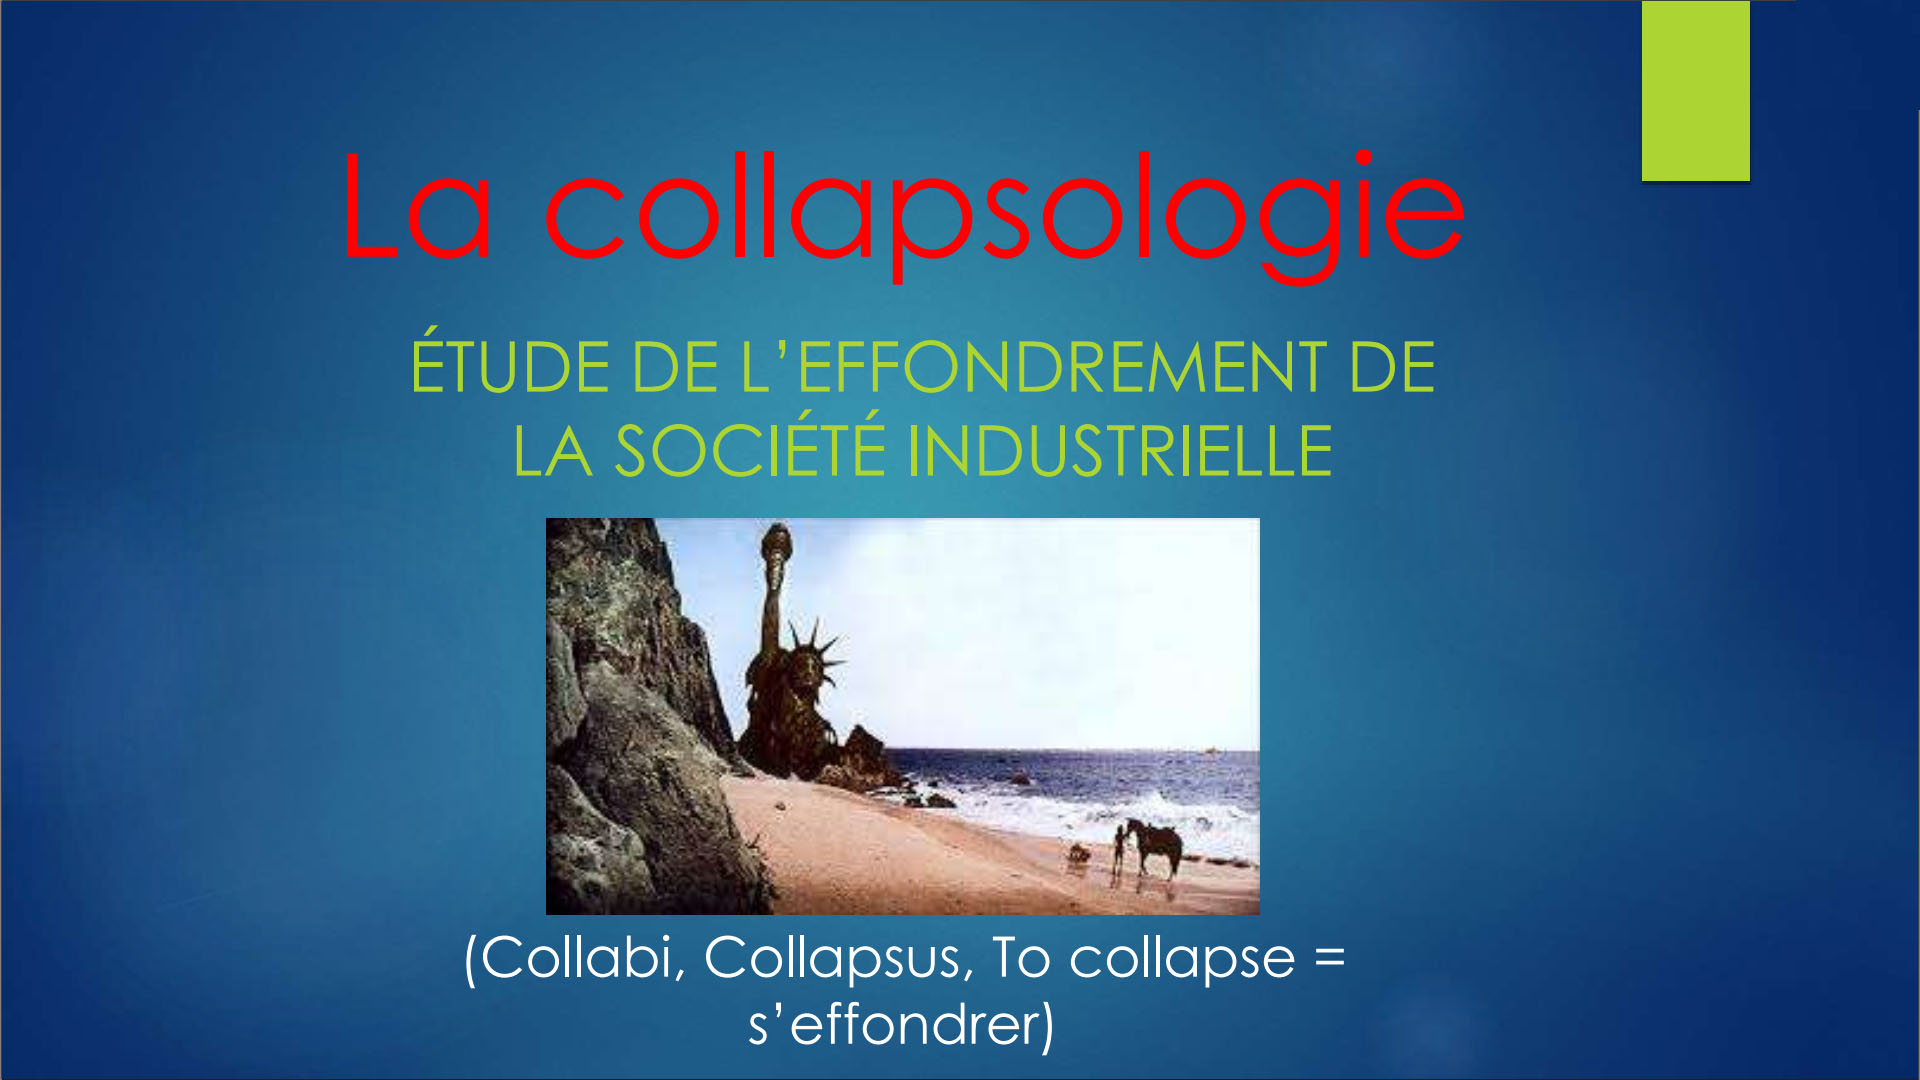 Photo sur la collapsologie.